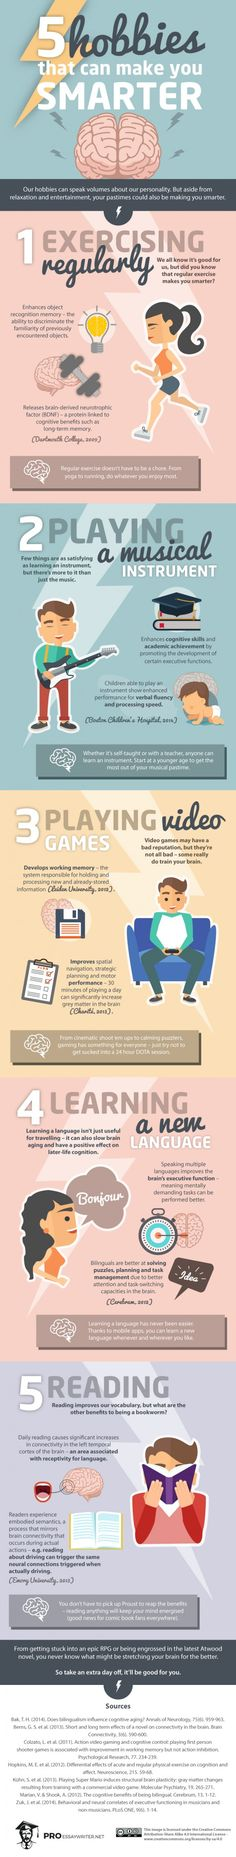 5 Hobbies That Can Make You Smarter Infographic